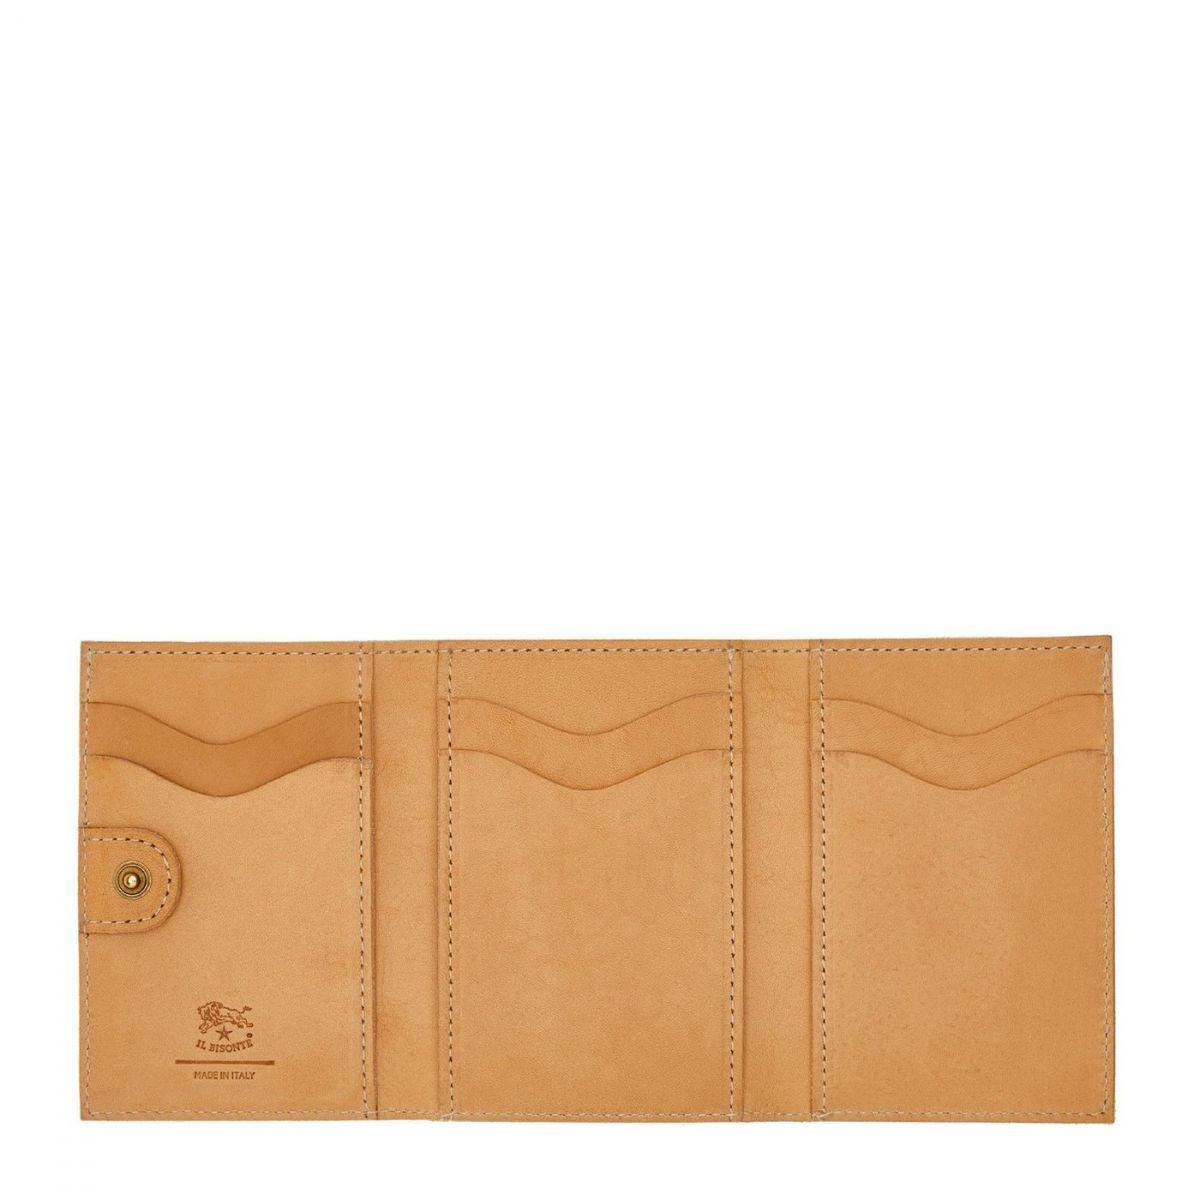 Women's Wallet  in Cowhide Leather SMW098 color Natural | Details